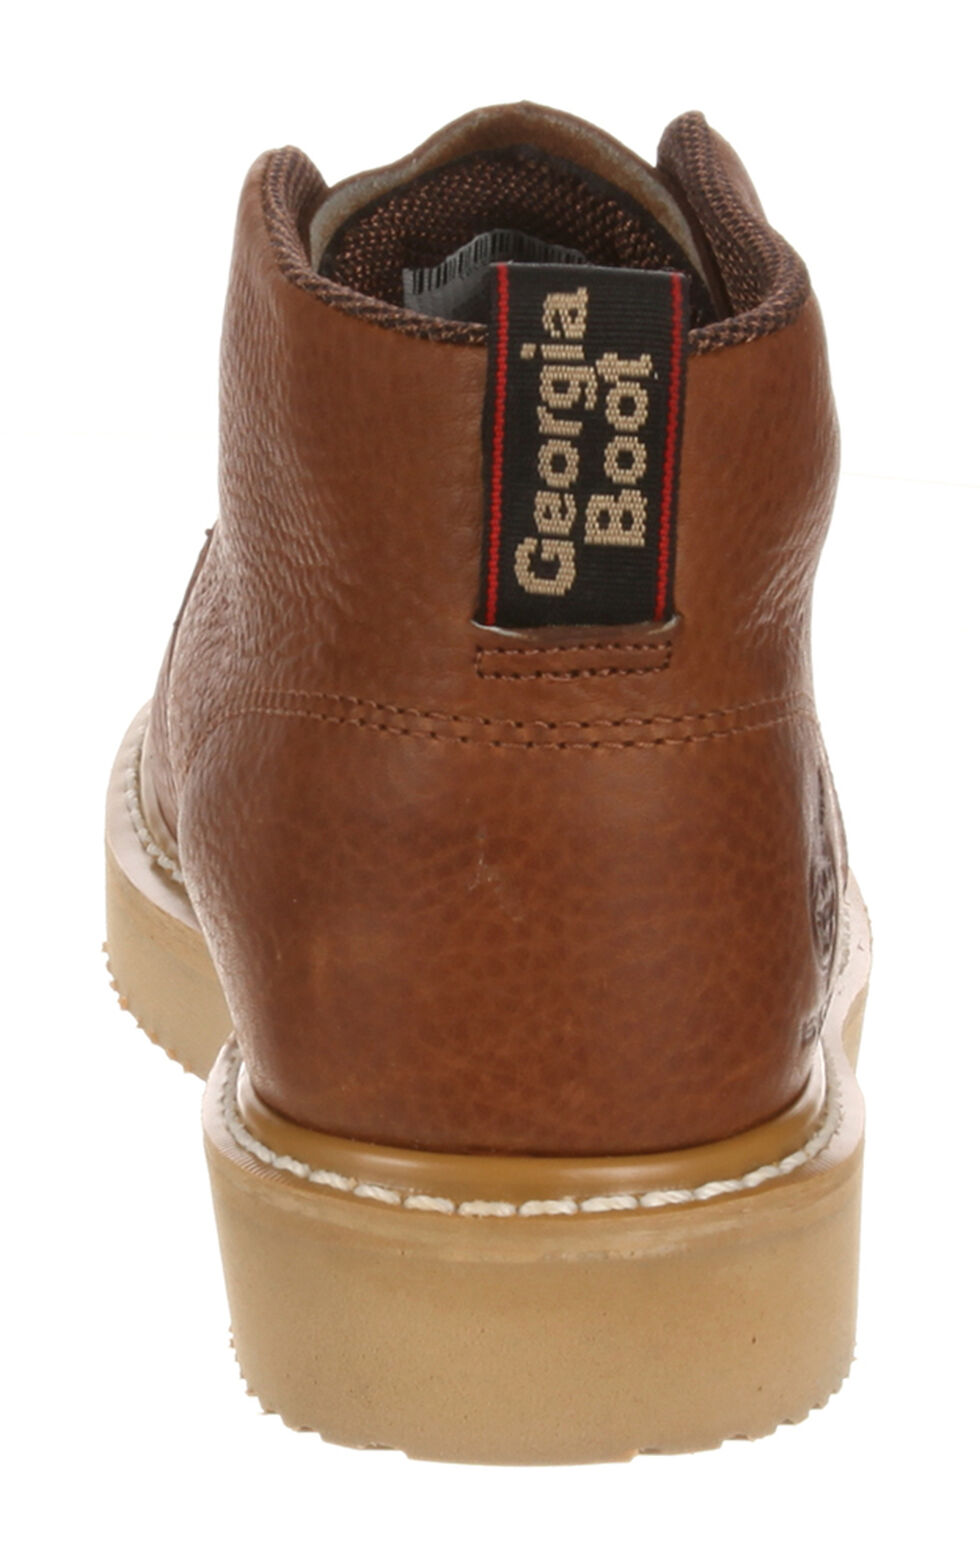 Georgia Farm and Ranch Chukka Work Boots - Round Toe, Brown, hi-res